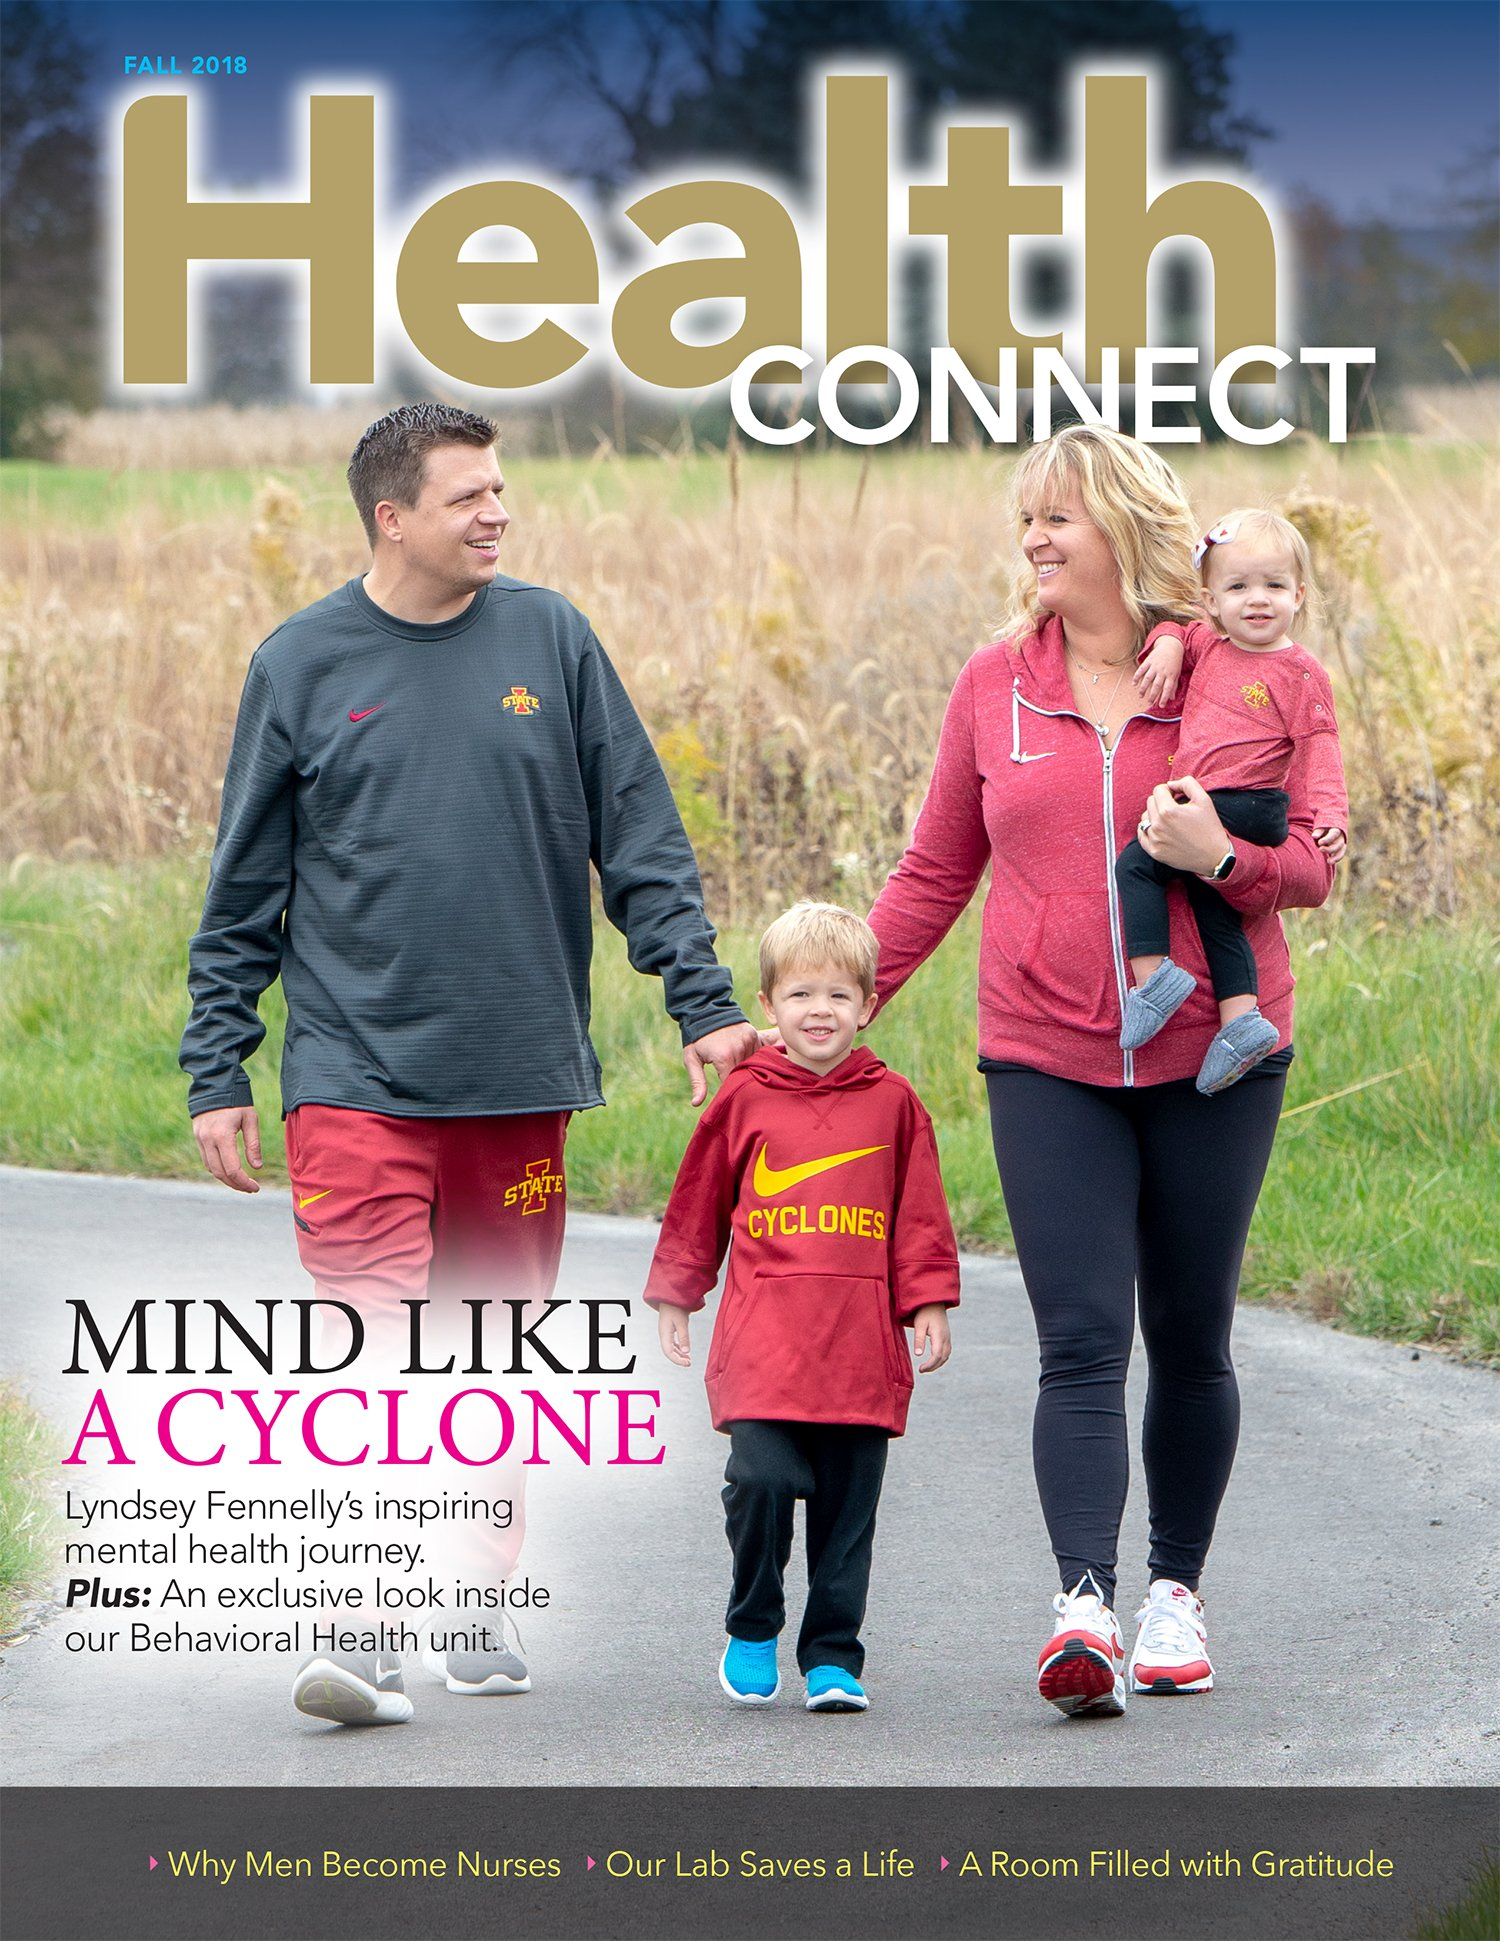 Health Connect Cover Fall 2018 - Lyndsey Fennelly's inspiring mental health journey. | An exclusive look inside our Behavioral Health Unit | Why Men Become Nurses | Our Lab Saves a Life | A Room Filled with Gratitude